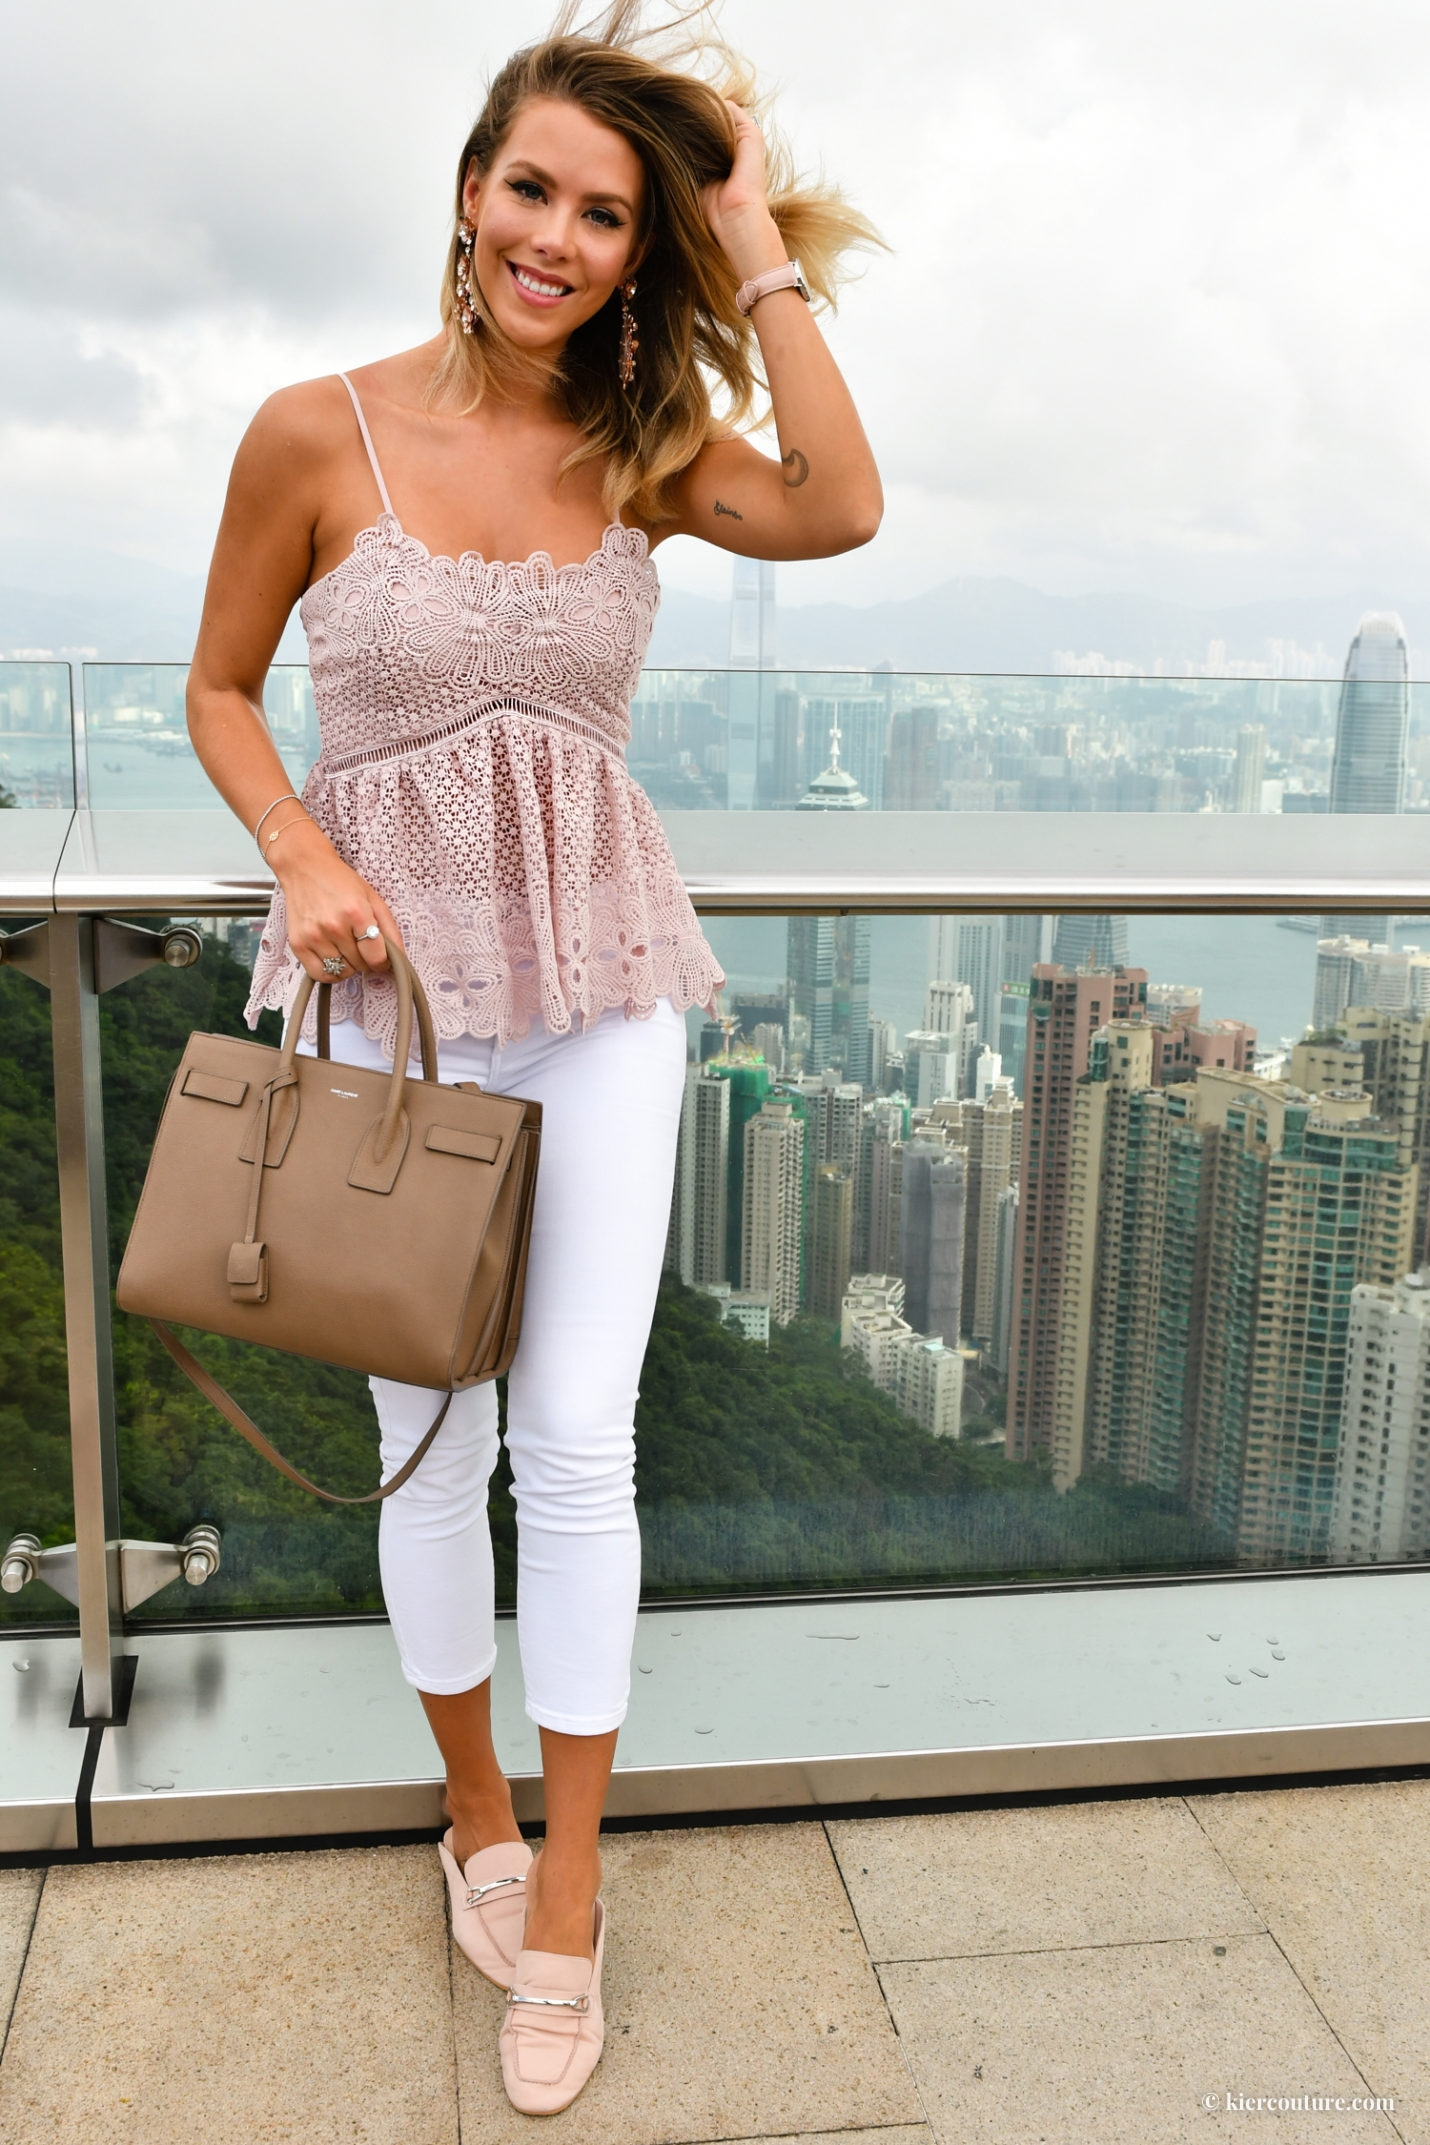 Topi Embroidered peplum top in blush and white jeans in hong kong